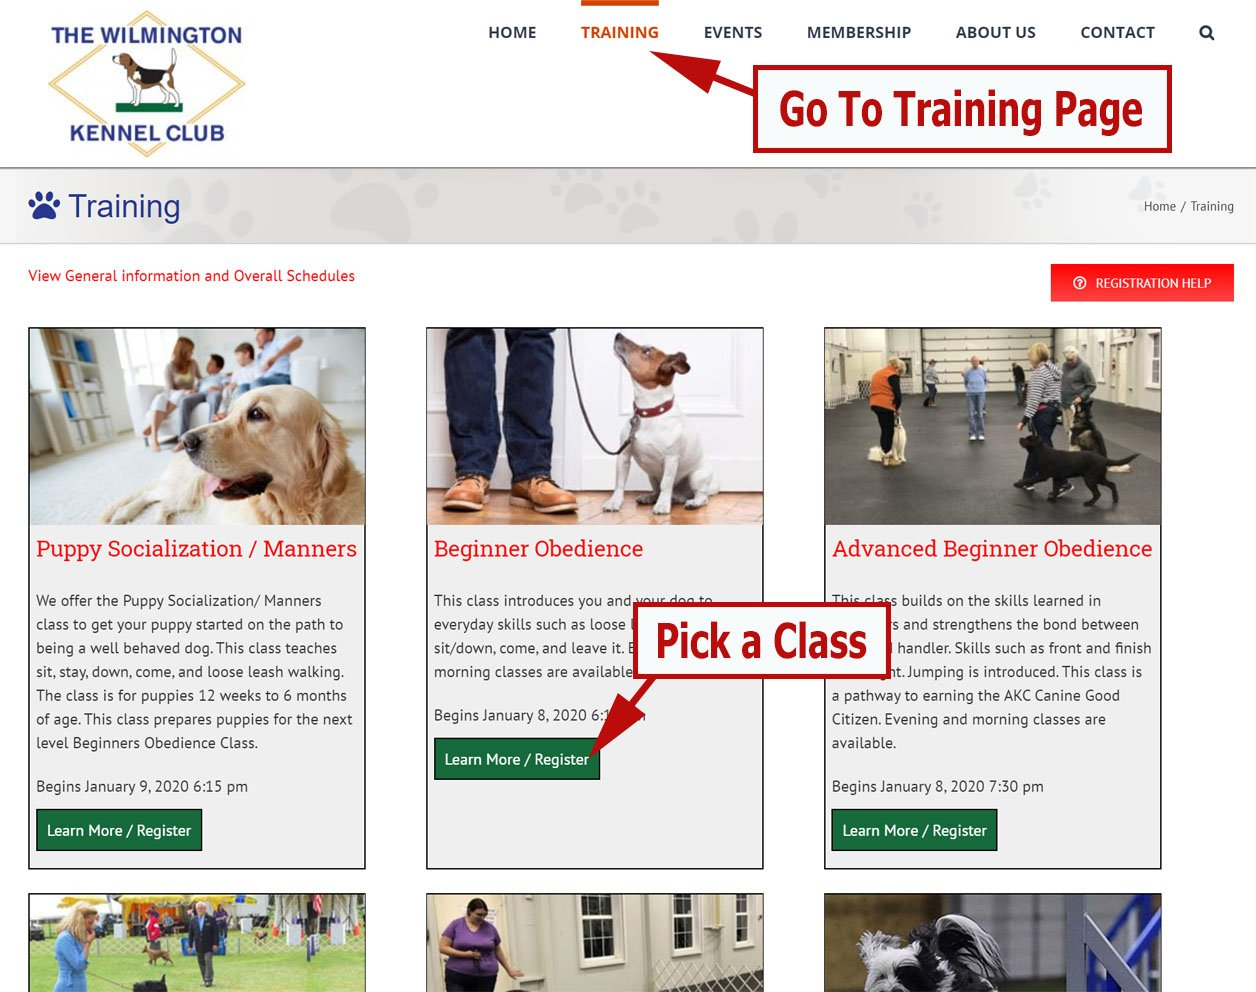 Screenshot with arrows pointing to the Training menu item and the Learn More button for a class